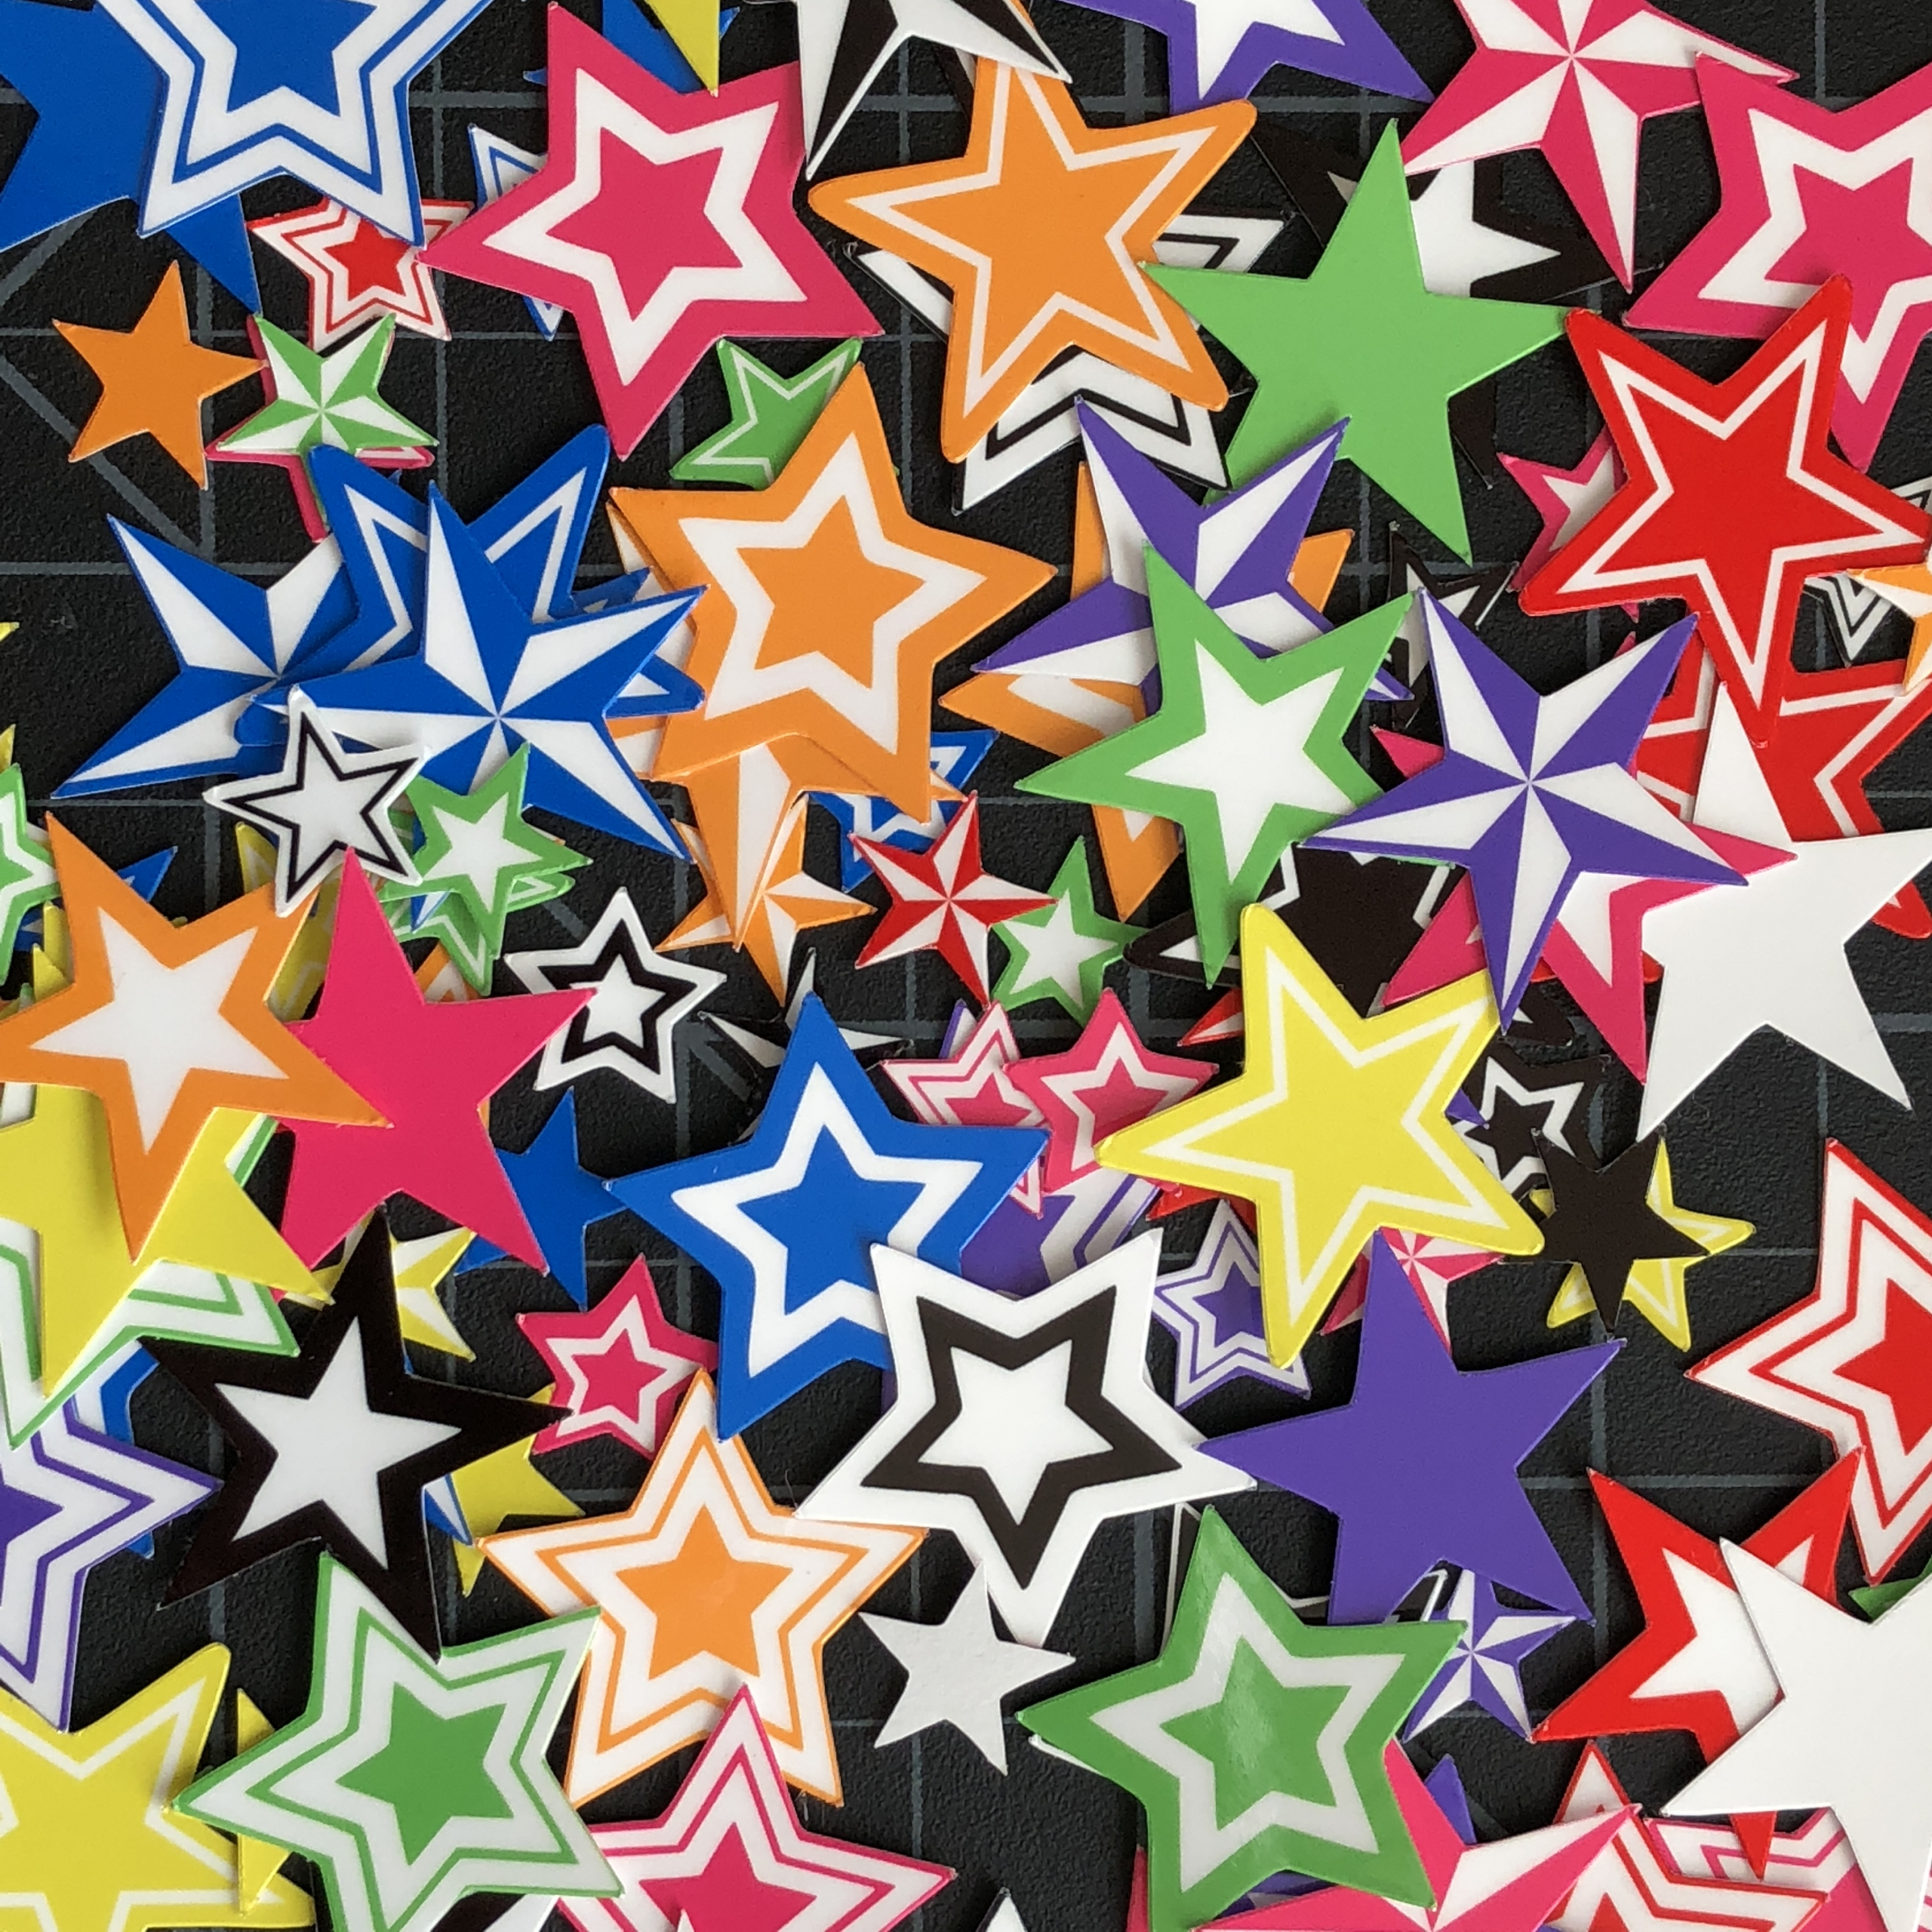 ALL Stars Sticker SWAG Packs by RC SWAG Custom Stickers